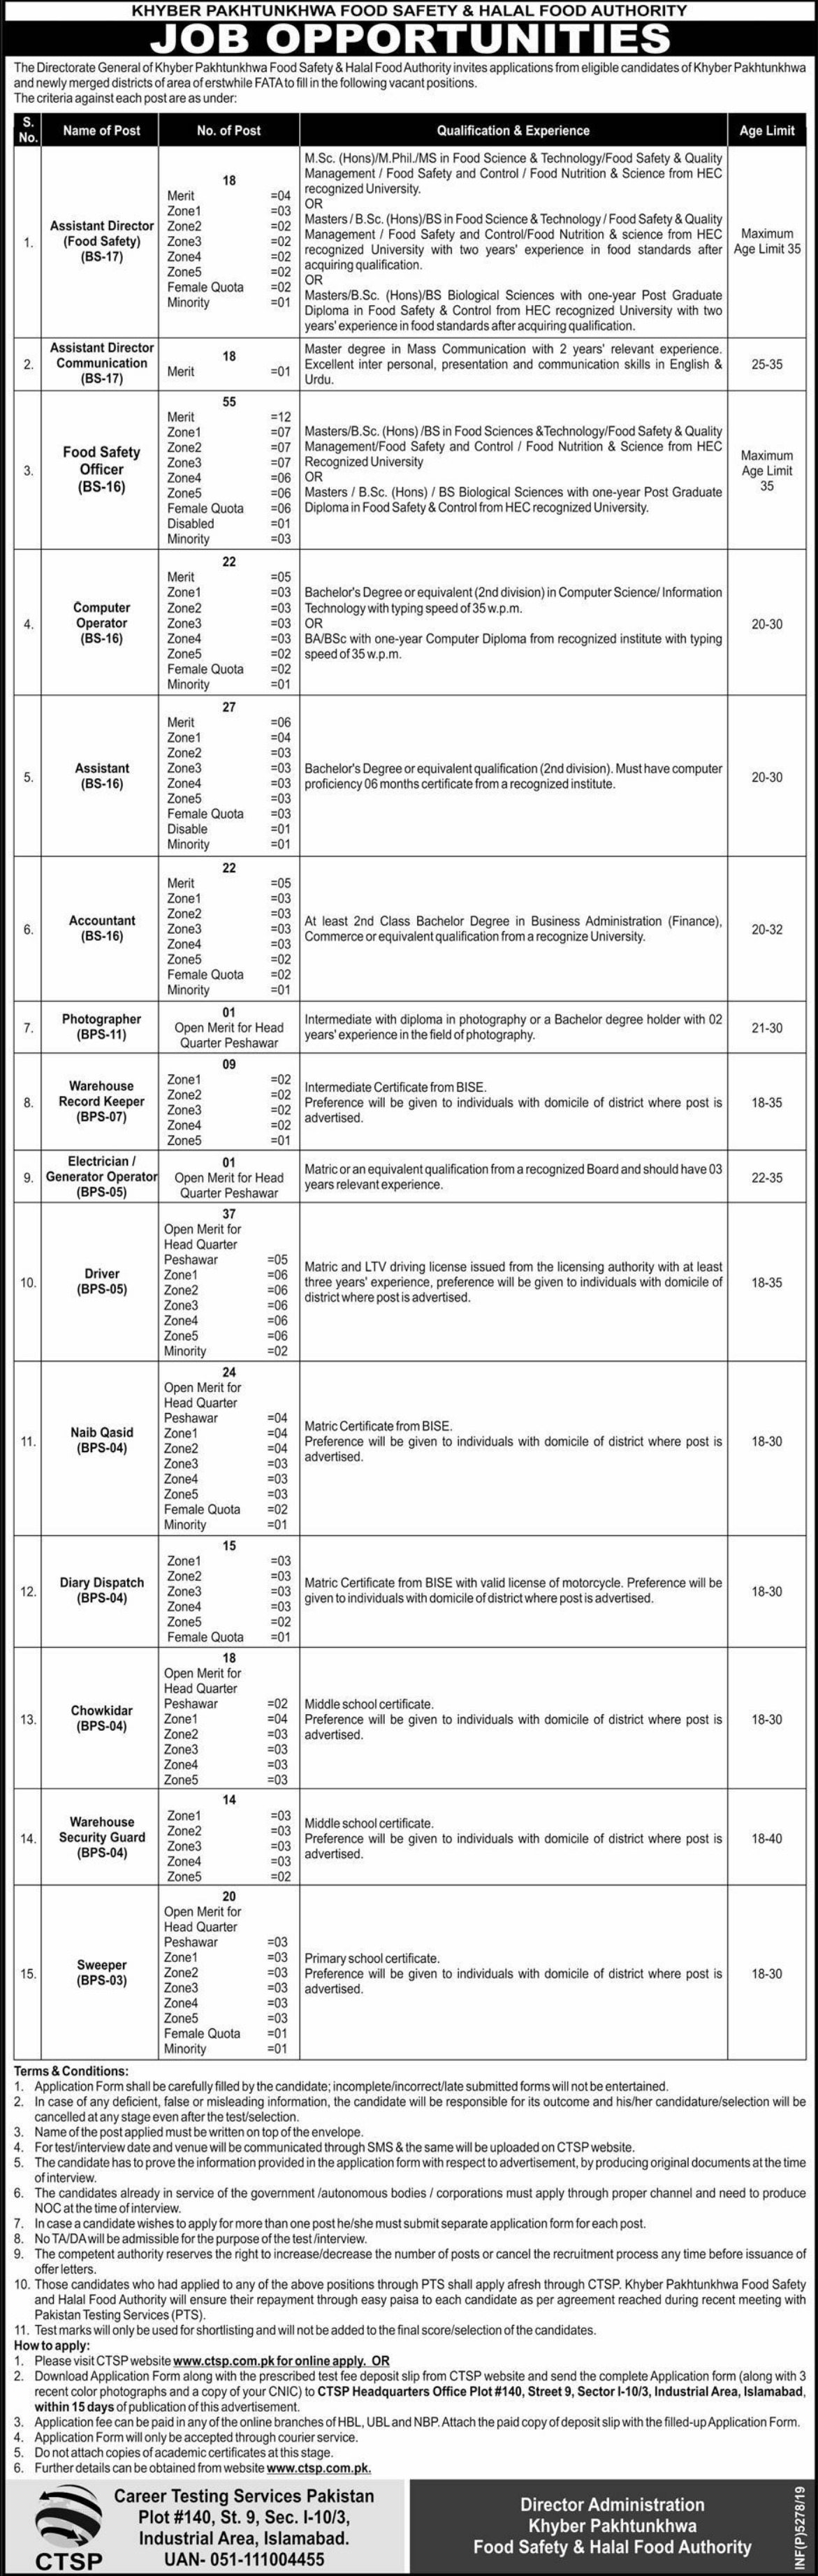 Khyber Pakhtunkhwa Food Safety & Halal Food Authority KPK Jobs 2019